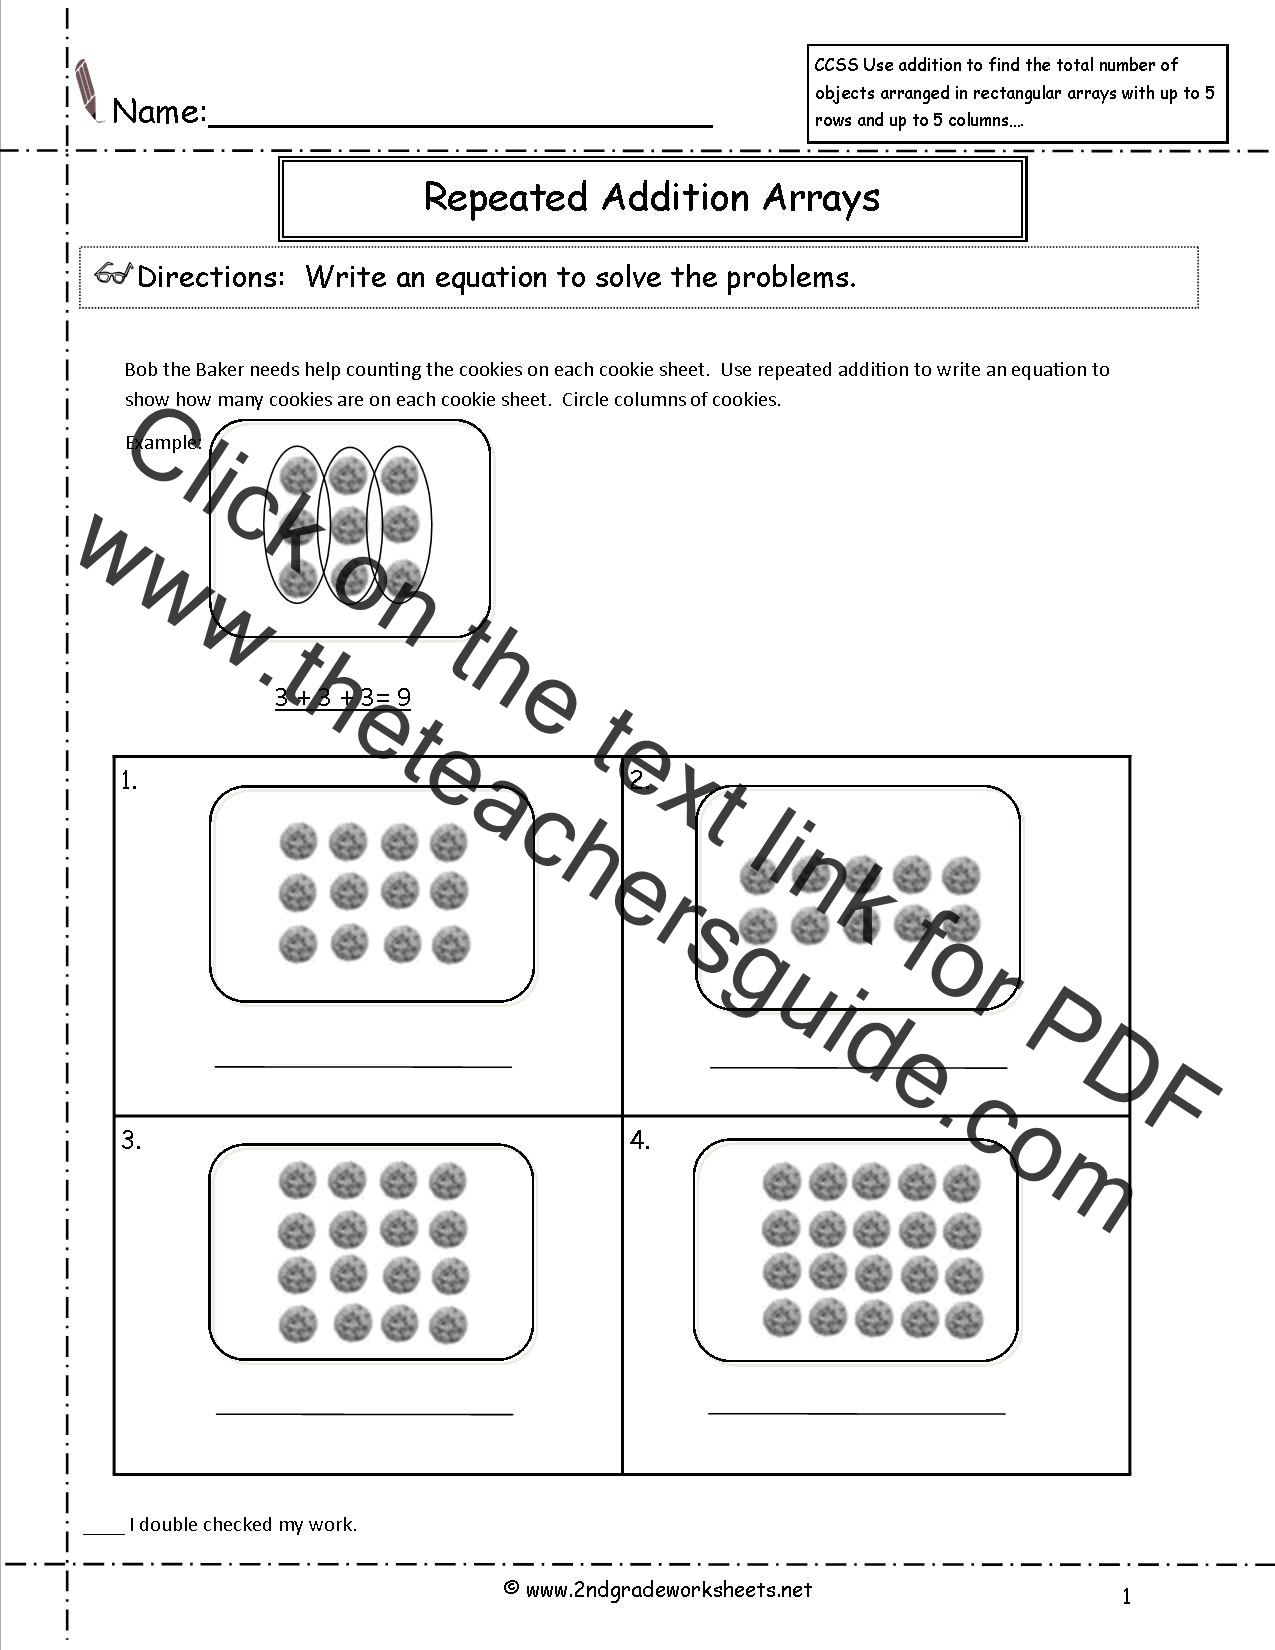 Worksheets Common Core Worksheets For 3rd Grade 2nd grade math common core state standards worksheets oa 4 worksheets